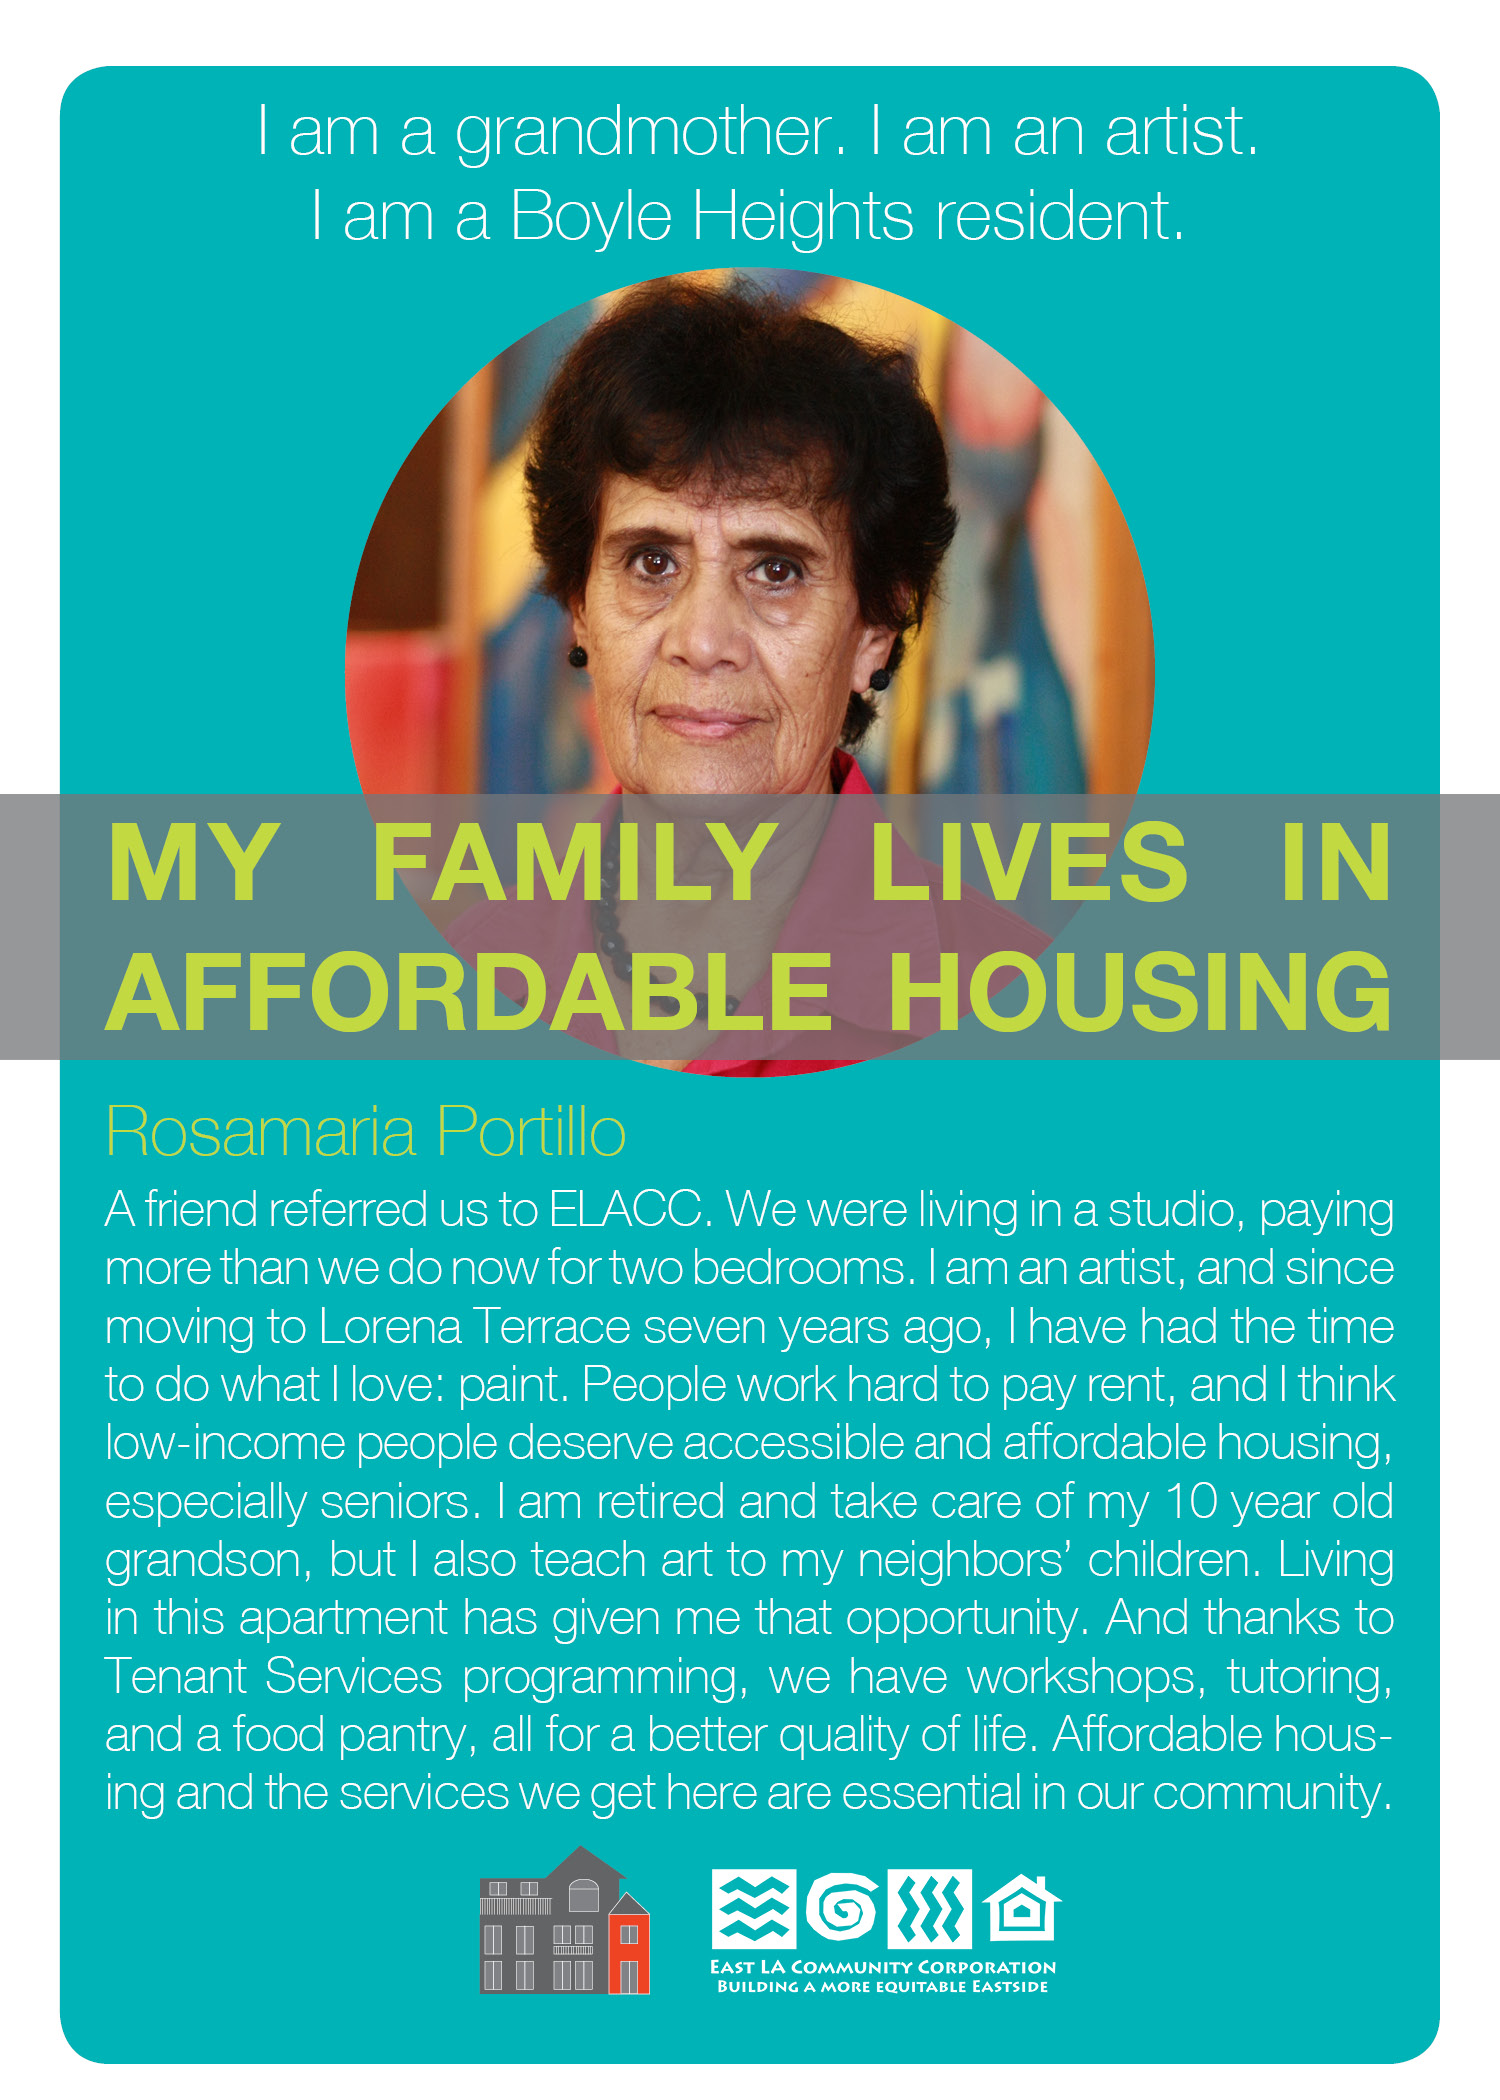 4_-_Live_in_Affordable_Housing-Rosamaria-_JPEG.jpg